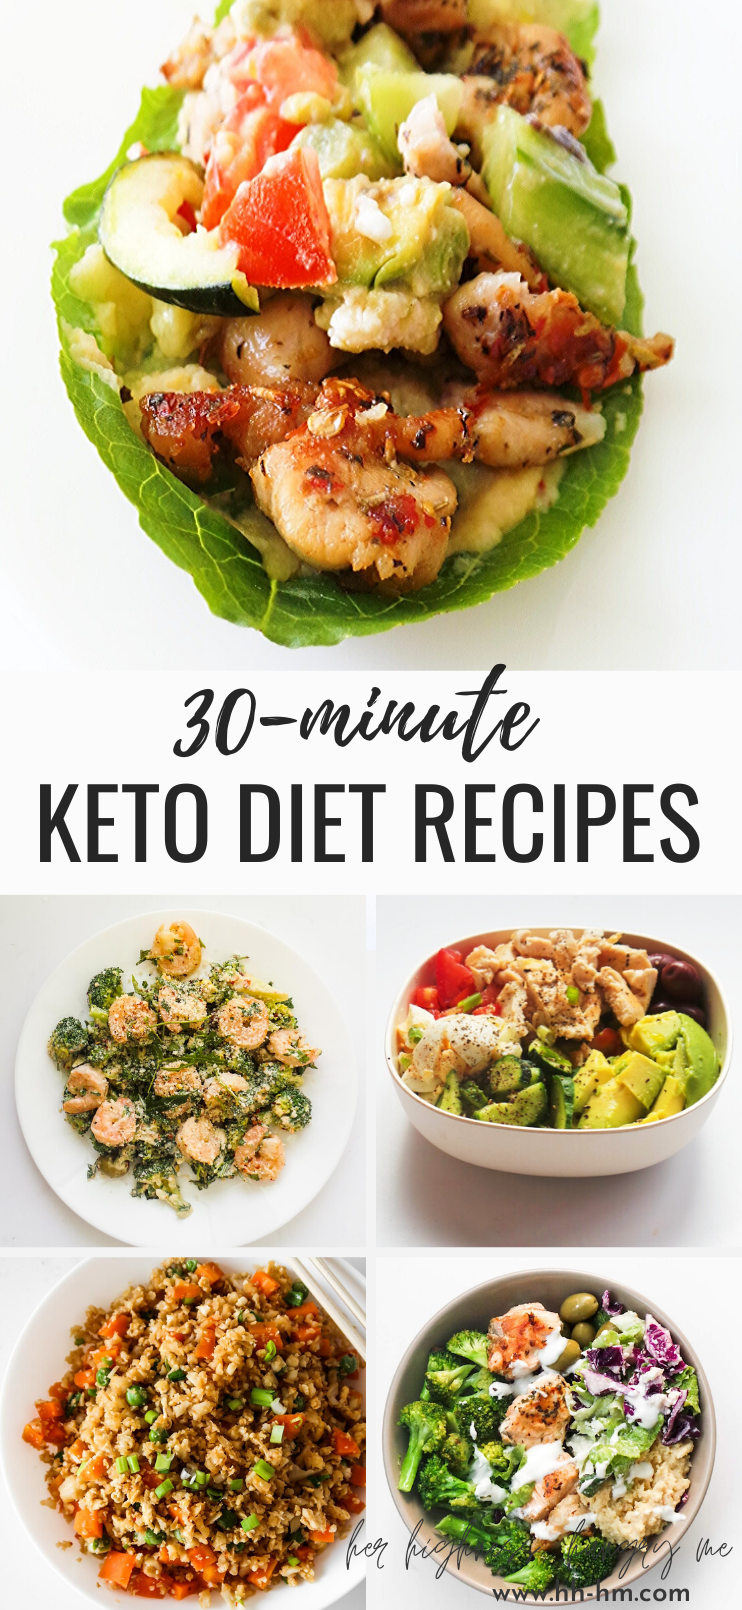 13 low carb dinner recipes to make this moth! These easy Keto diet recipes are delicious, gluten-free and great for lunch or dinner. This collection features healthy dinner recipes with chicken, avocado, ground beef, shrimp, salmon and so much more! The recipes are also great for meal planning and meal prep!